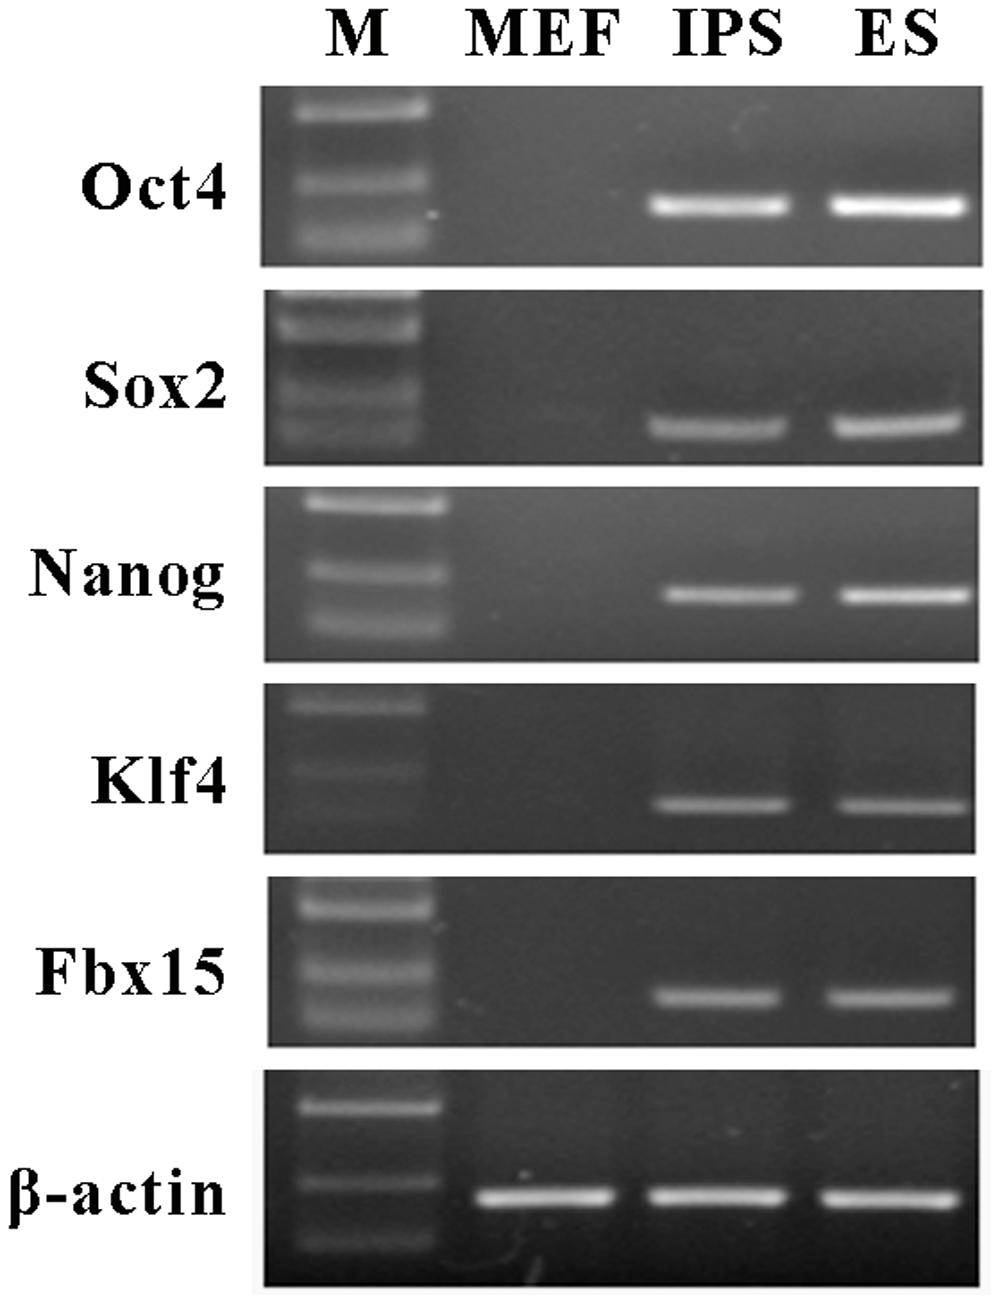 Frontiers | Induced Pluripotent Stem Cells Inhibit Bleomycin-Induced